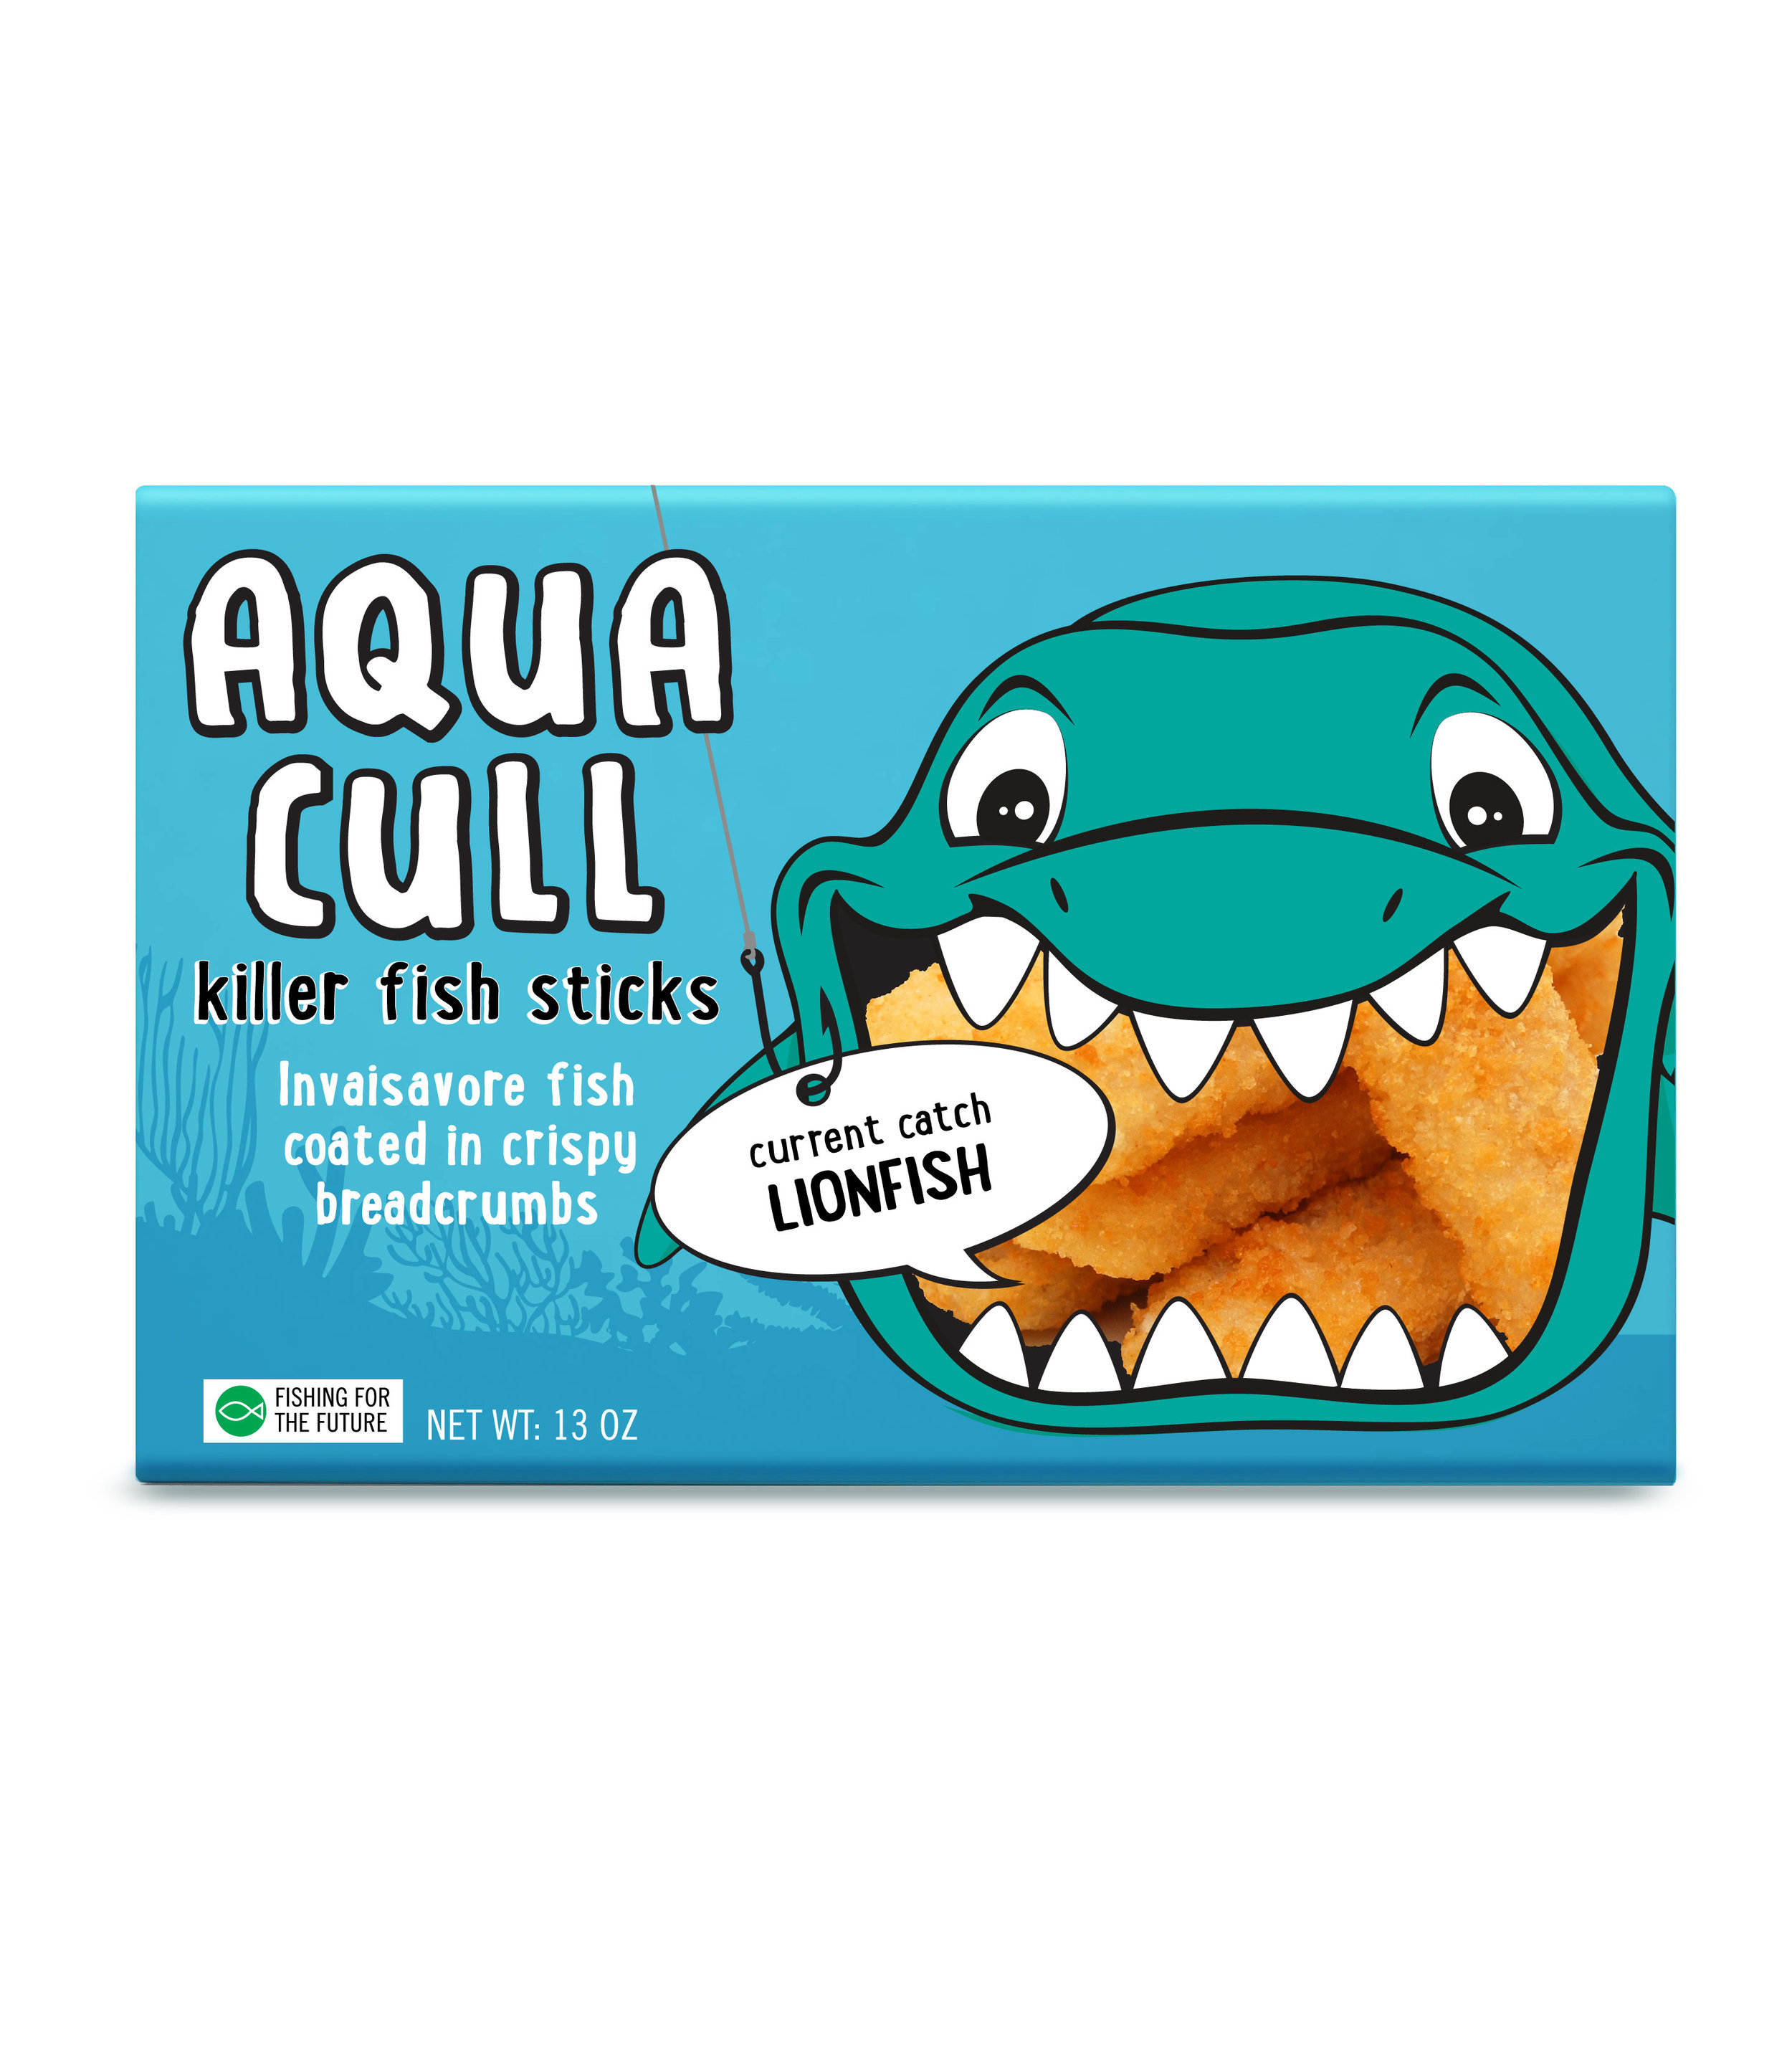 Aqua Cull    Aqua Cull fish sticks help the environment and taste delicious! With each crunchy, satisfying bite, you're getting nutritious seafood that helps our water ecosystems stay balanced and sustainable. Made with regionally-based, invasive fish varieties, our crispy baked sticks are perfect for quick dinners the whole family will love.